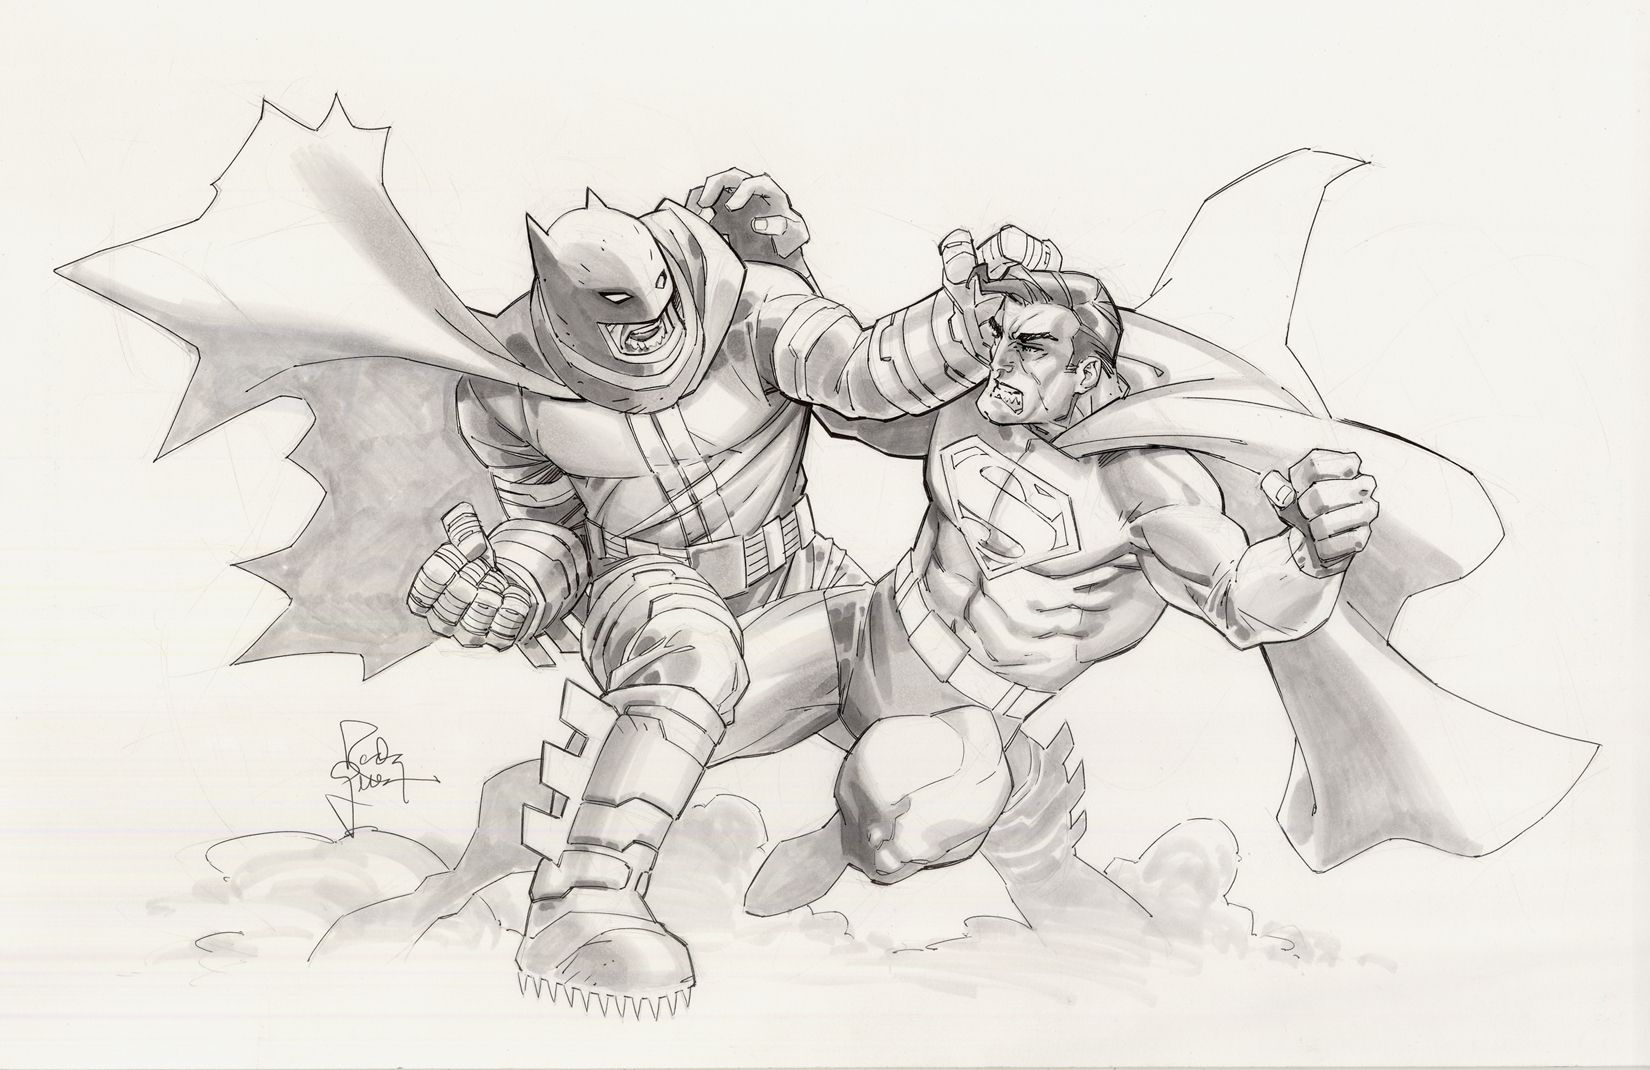 graphic Randy green dark knight. Battle drawing batman